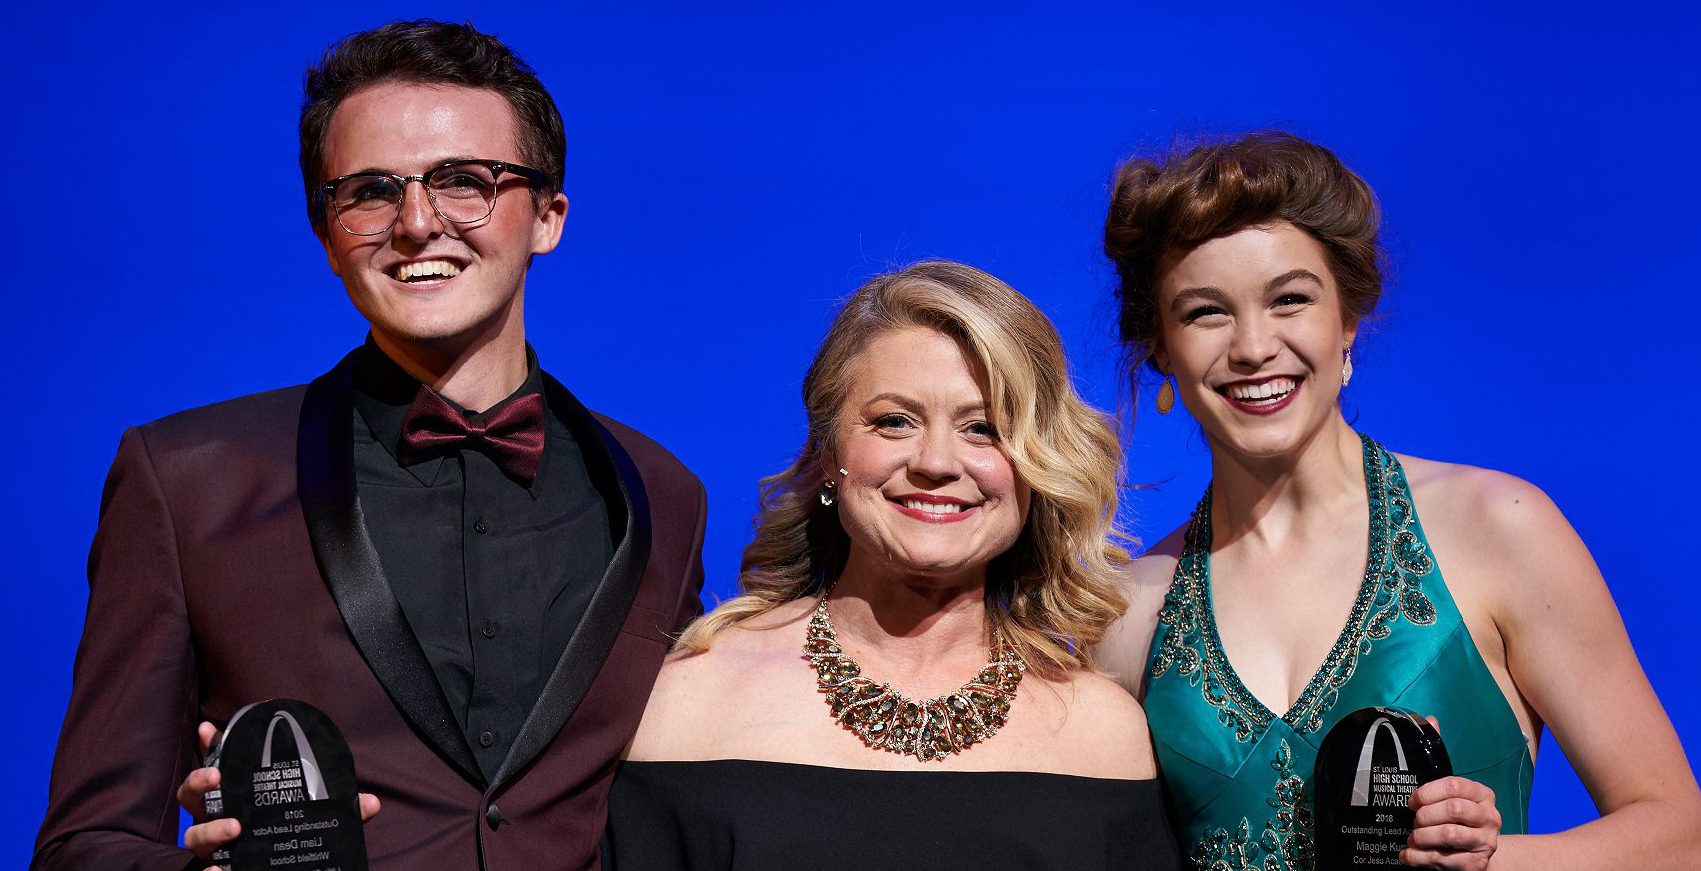 st louis high school musical theatre awards fpacf